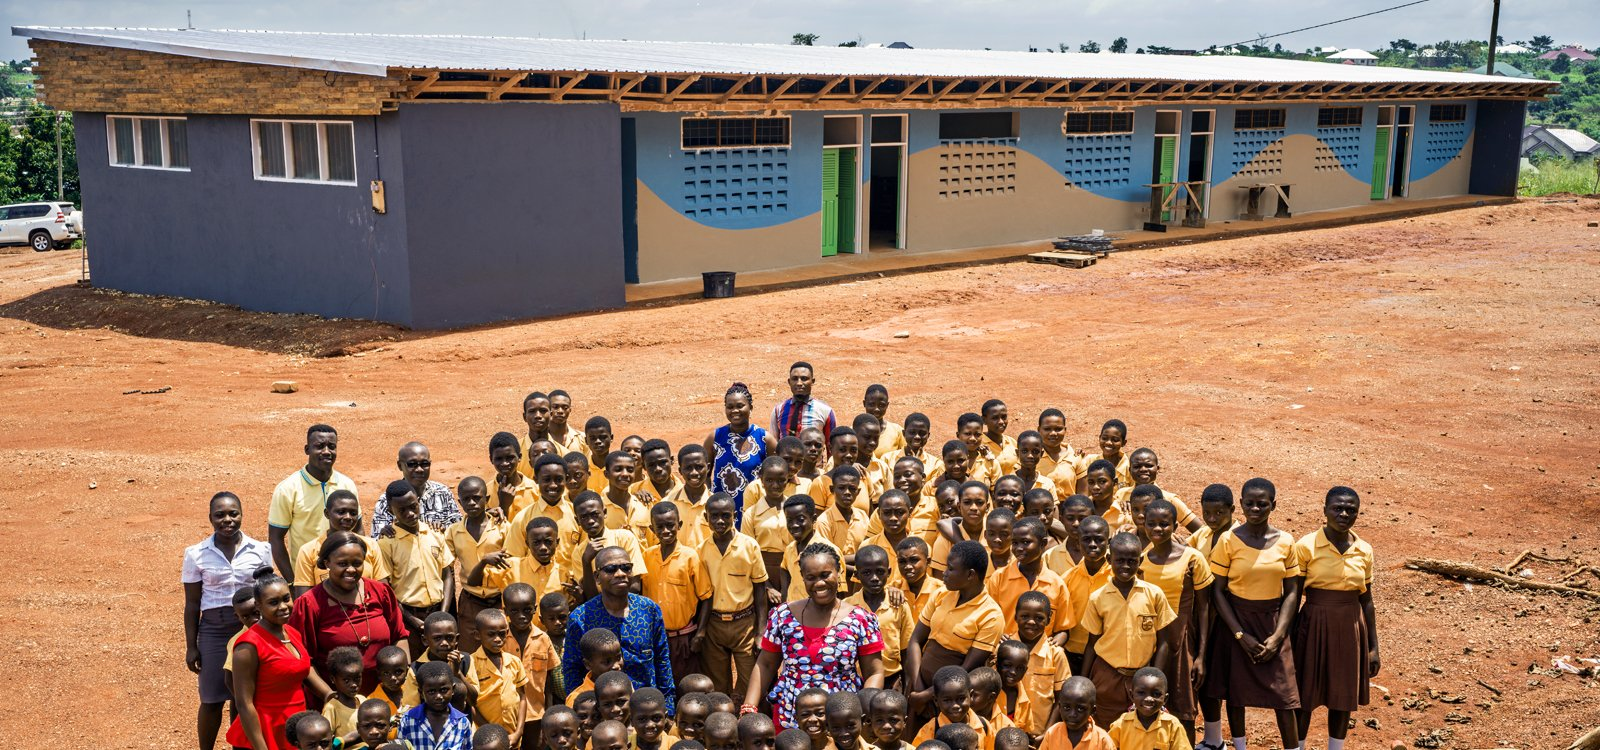 Local Sandvik leadership was able to finance construction of a six-classroom block, and the new classrooms were ready by early 2018.